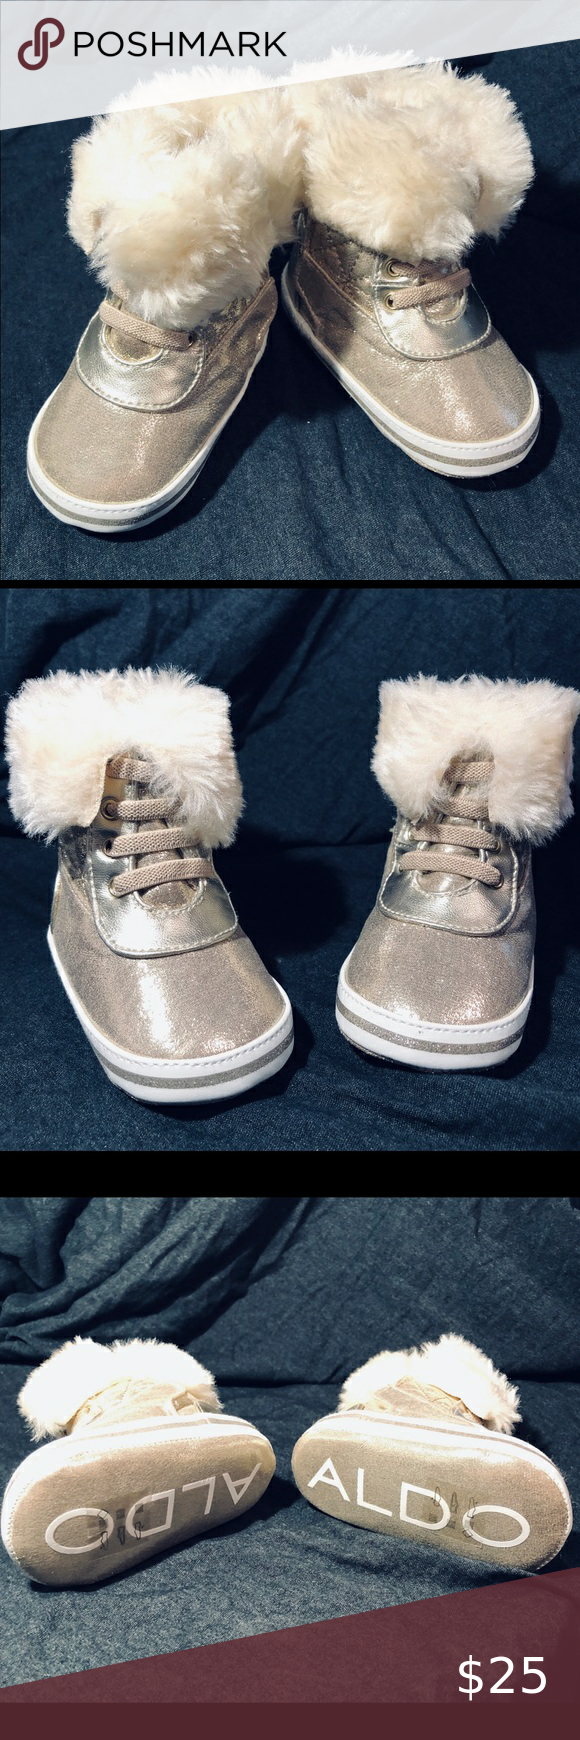 Aldo baby boots in 2020 | Baby boots